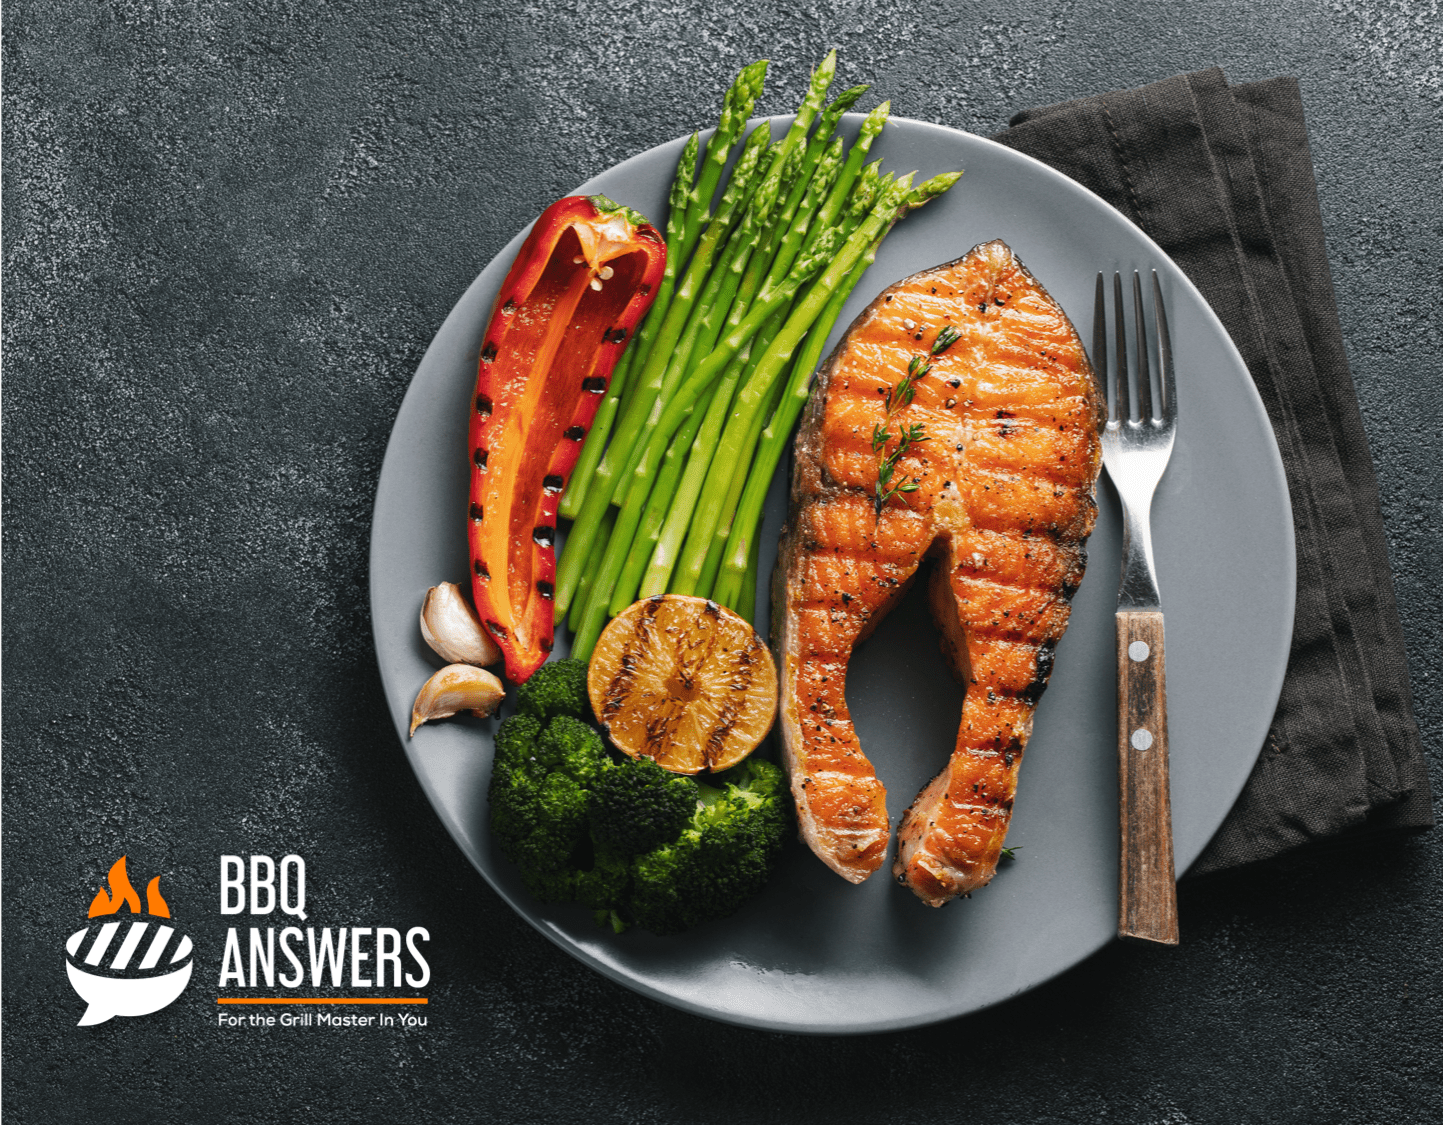 Is BBQ Food Keto-Friendly? Ultimate Guide, FAQs and Recipes